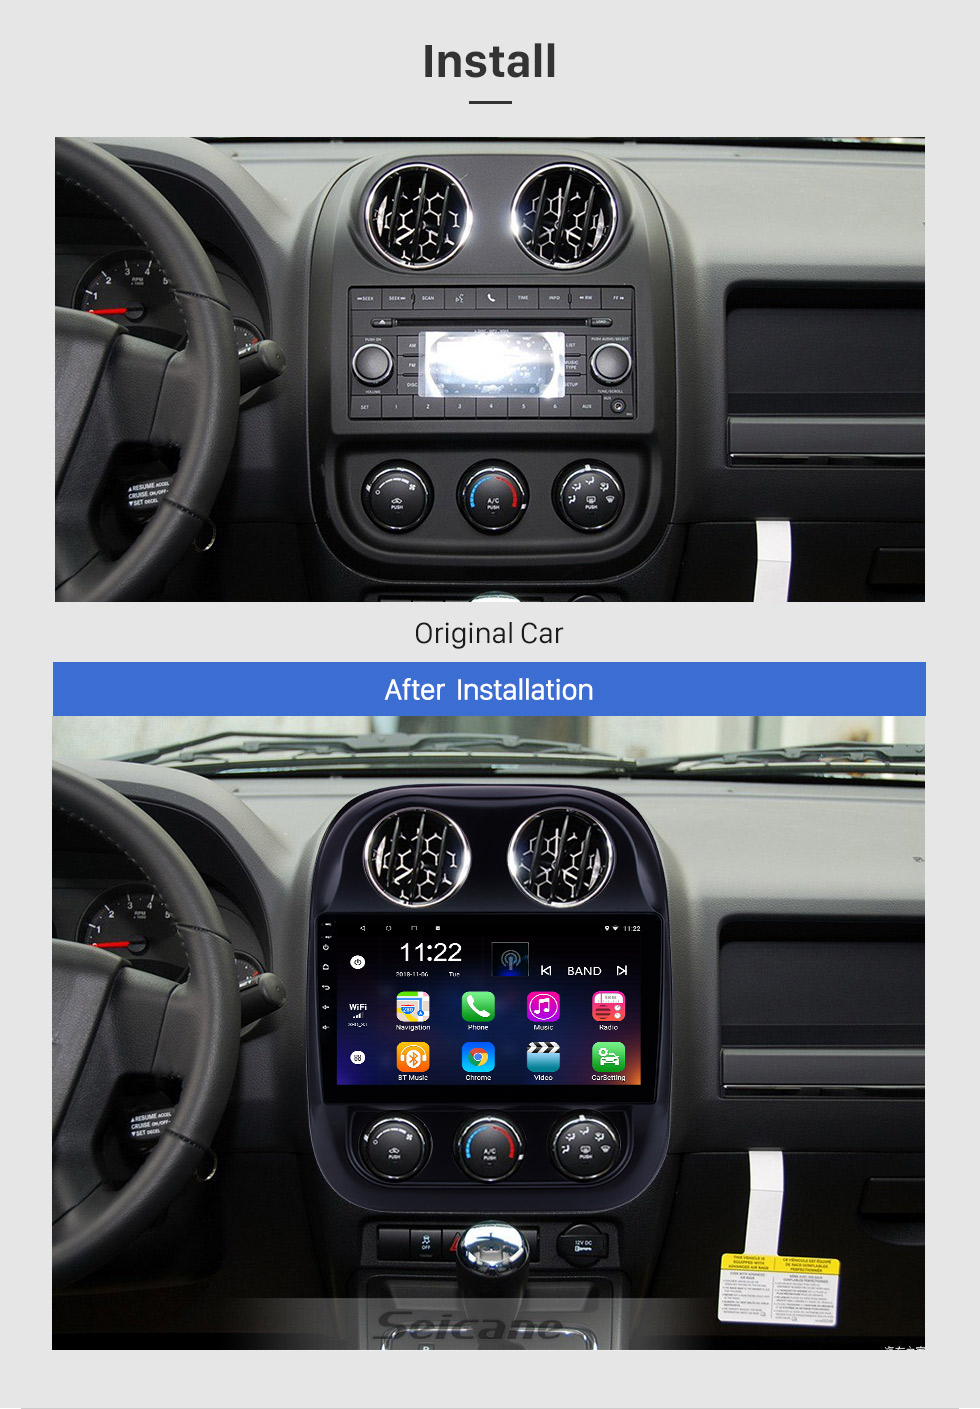 Seicane 2010-2016 Jeep Compass Android 8.1 GPS Navigation 10.1 inch HD Touchscreen Radio Bluetooth Mirror Link WIFI USB support Steering Wheel Control 3G Carplay Rearview